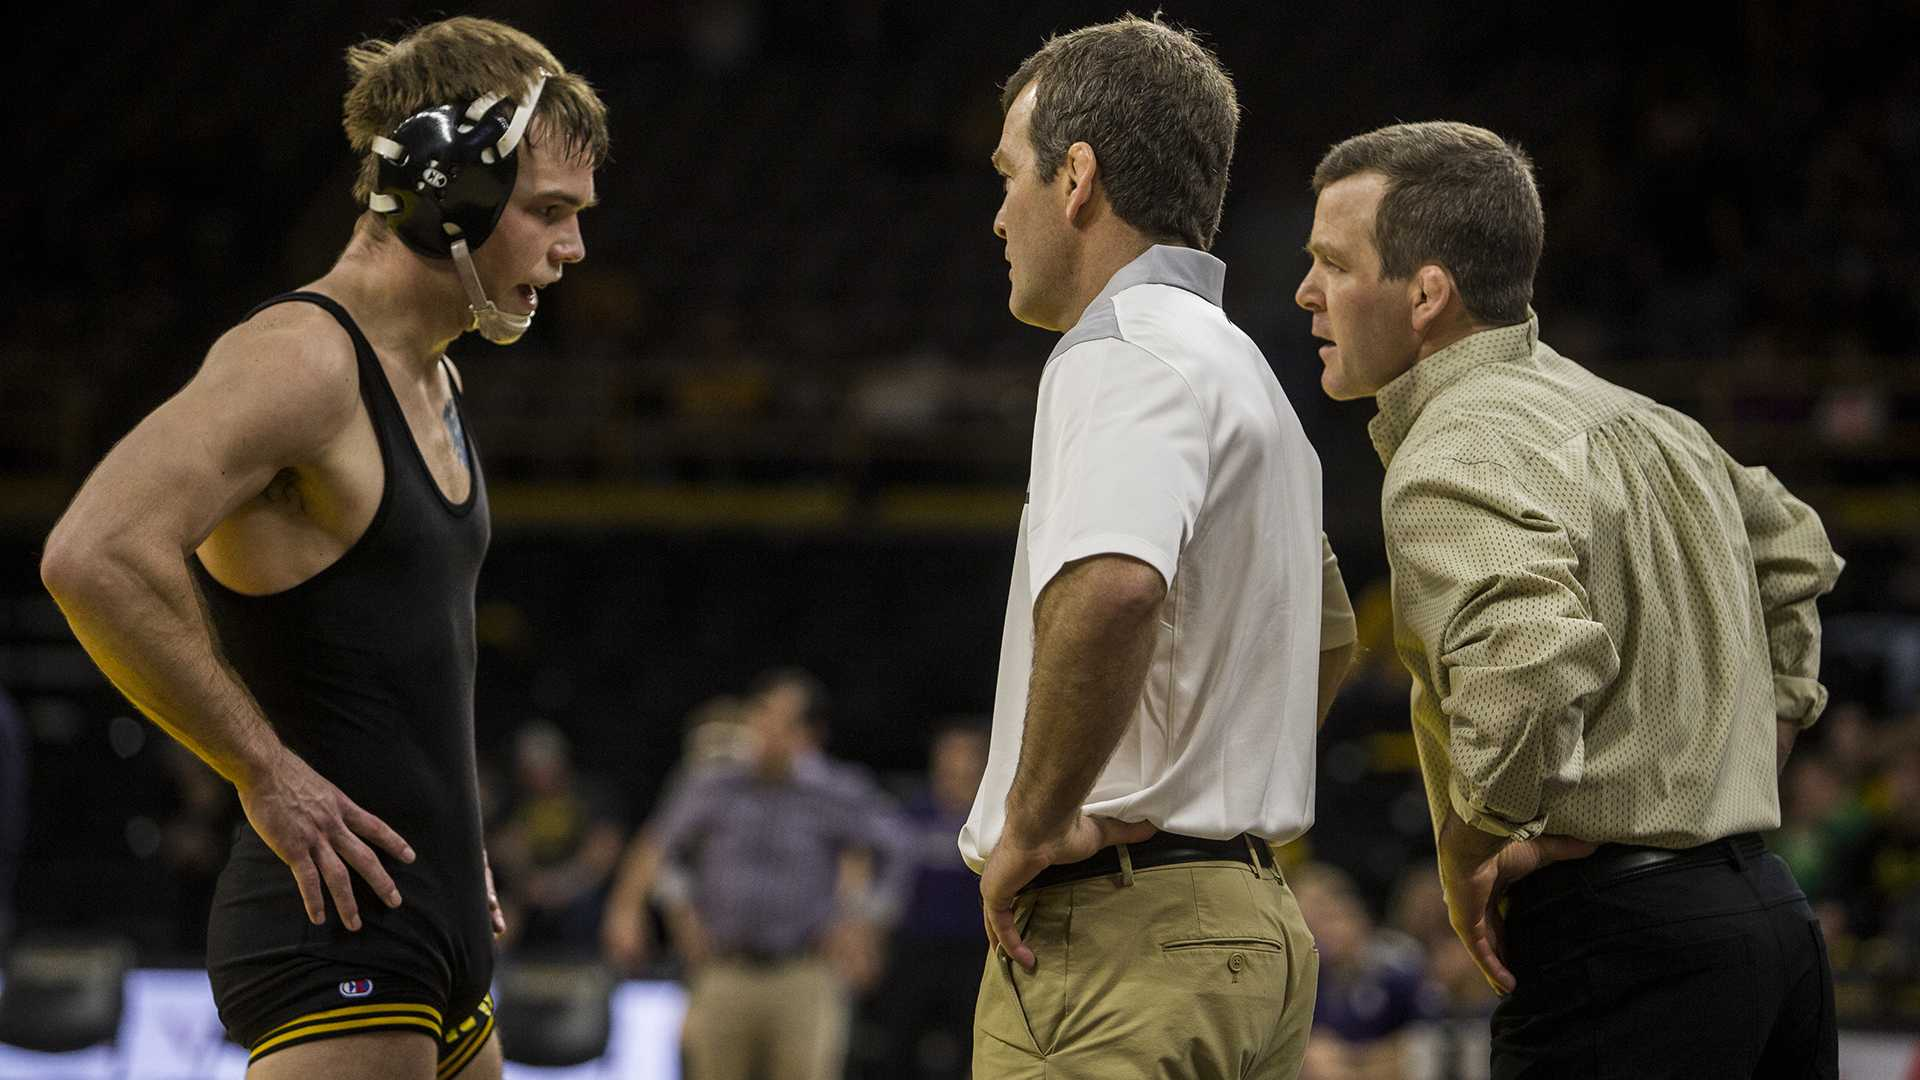 Iowa's number 2 ranked 159 pund wrestler Brandon Sorenson talks to head coaches Tom and Terry Brands during the Iowa vs. Northwestern dual meet on Sunday, Feb. 4, 2018. Sorenson won his match 5-4 to close out his home career as a Hawkeye and the Hawkeyes defeated the wildcats 33-2. (Nick Rohlman/The Daily Iowan)